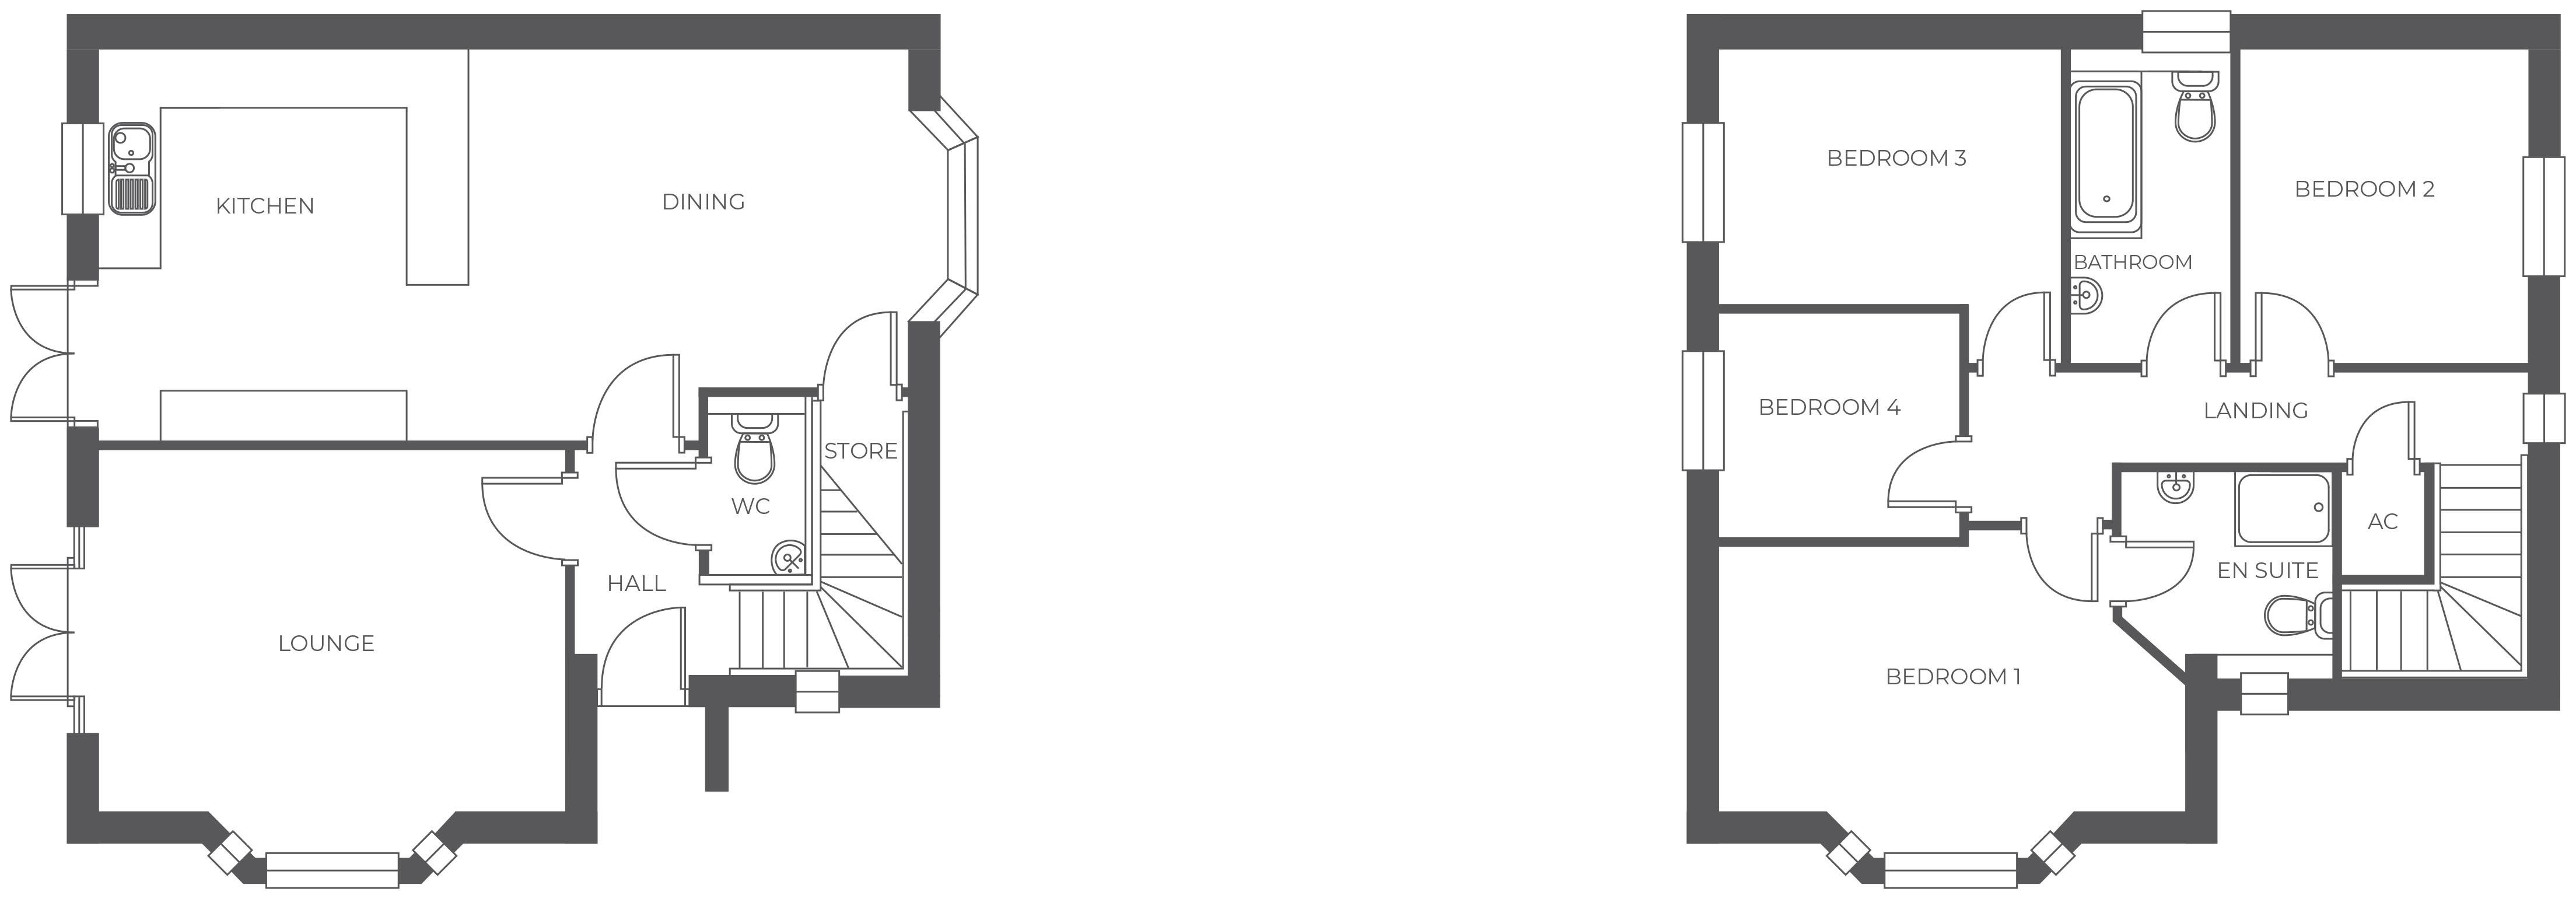 Ferrer's Chase, Plot 1 floor plan